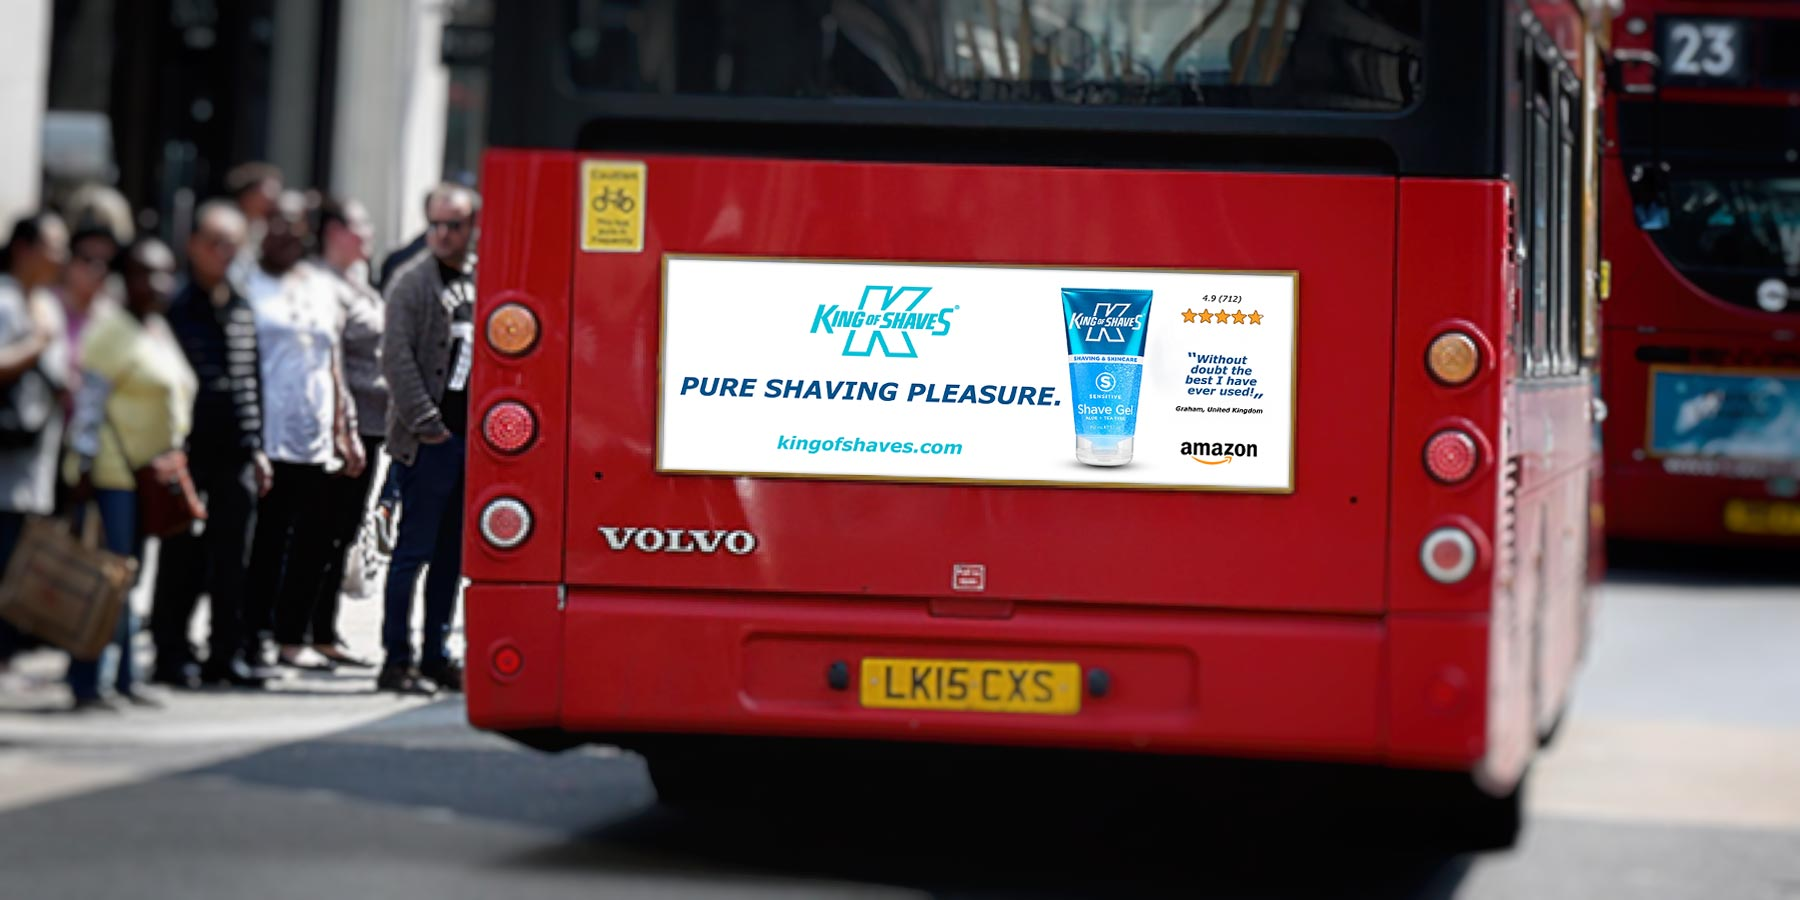 London Bus Adverts